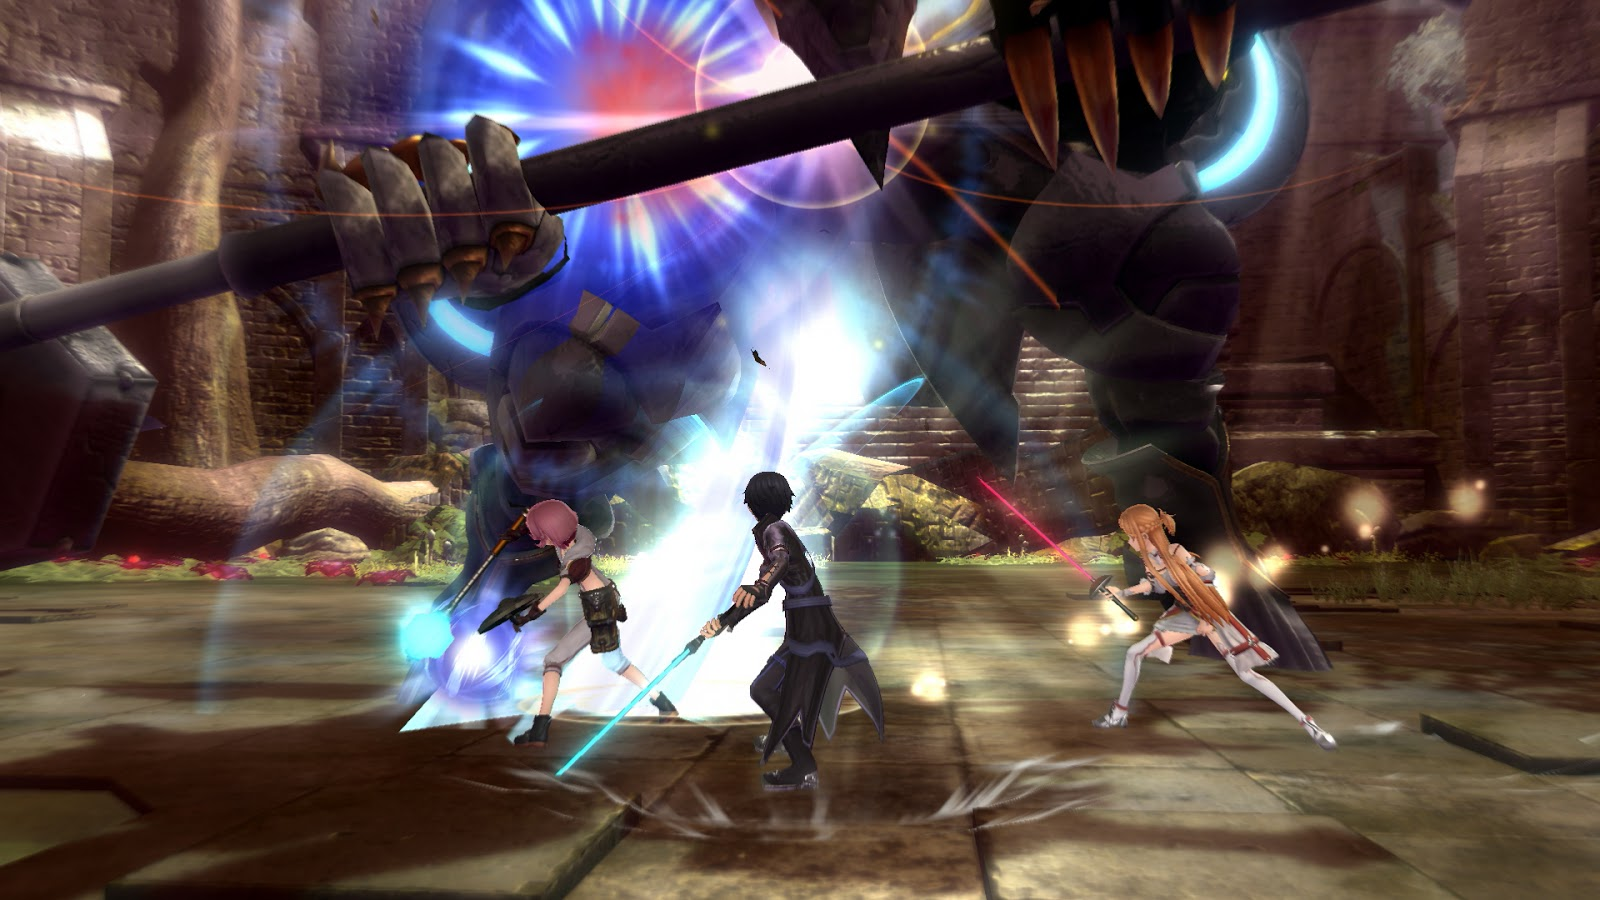 Review: Sword Art Online: Hollow Realization (Sony